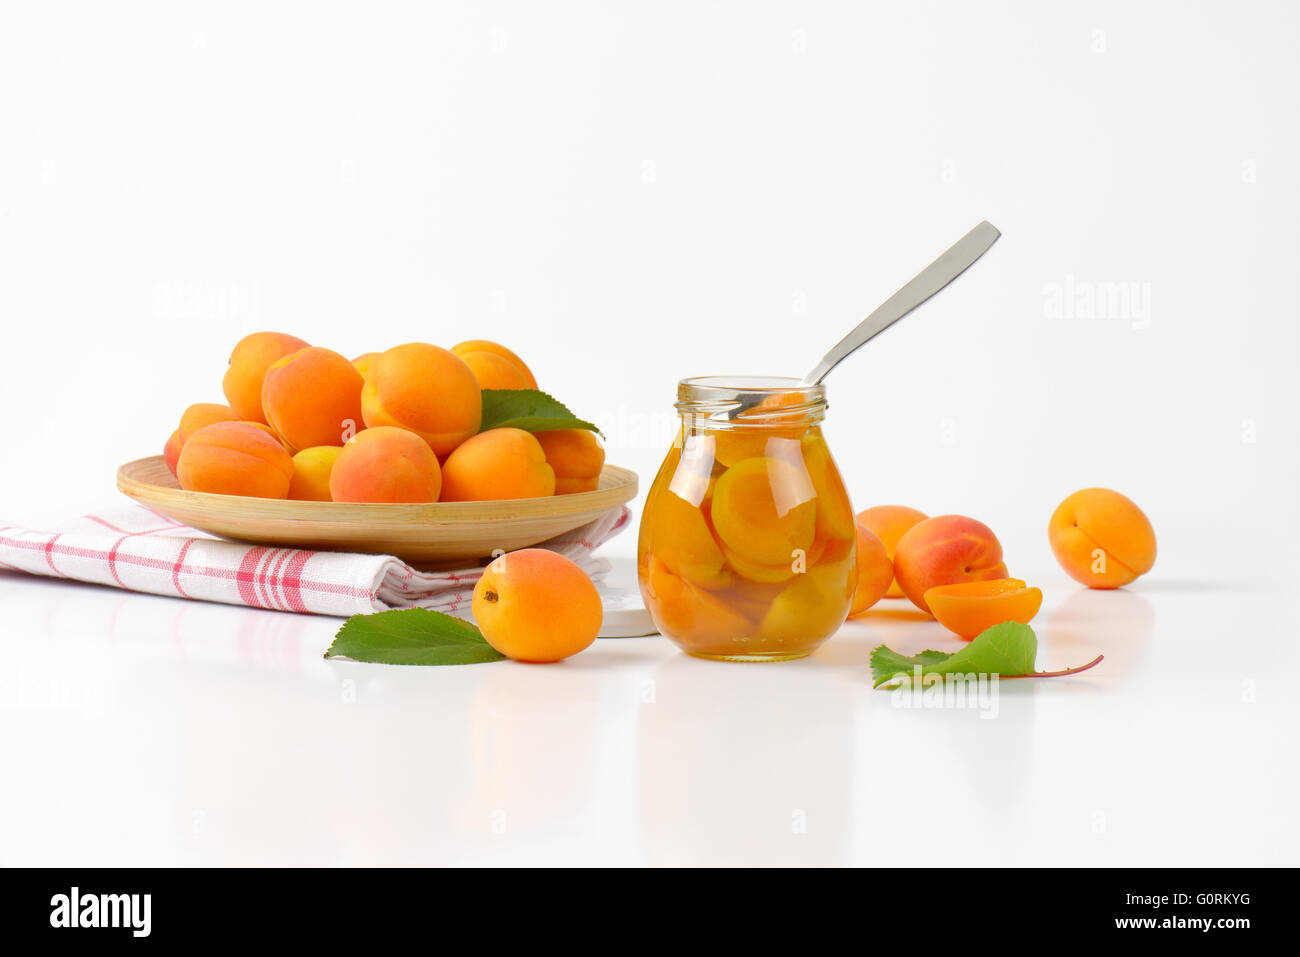 Jar of apricot compote and bowl of fresh apricots - Stock Image